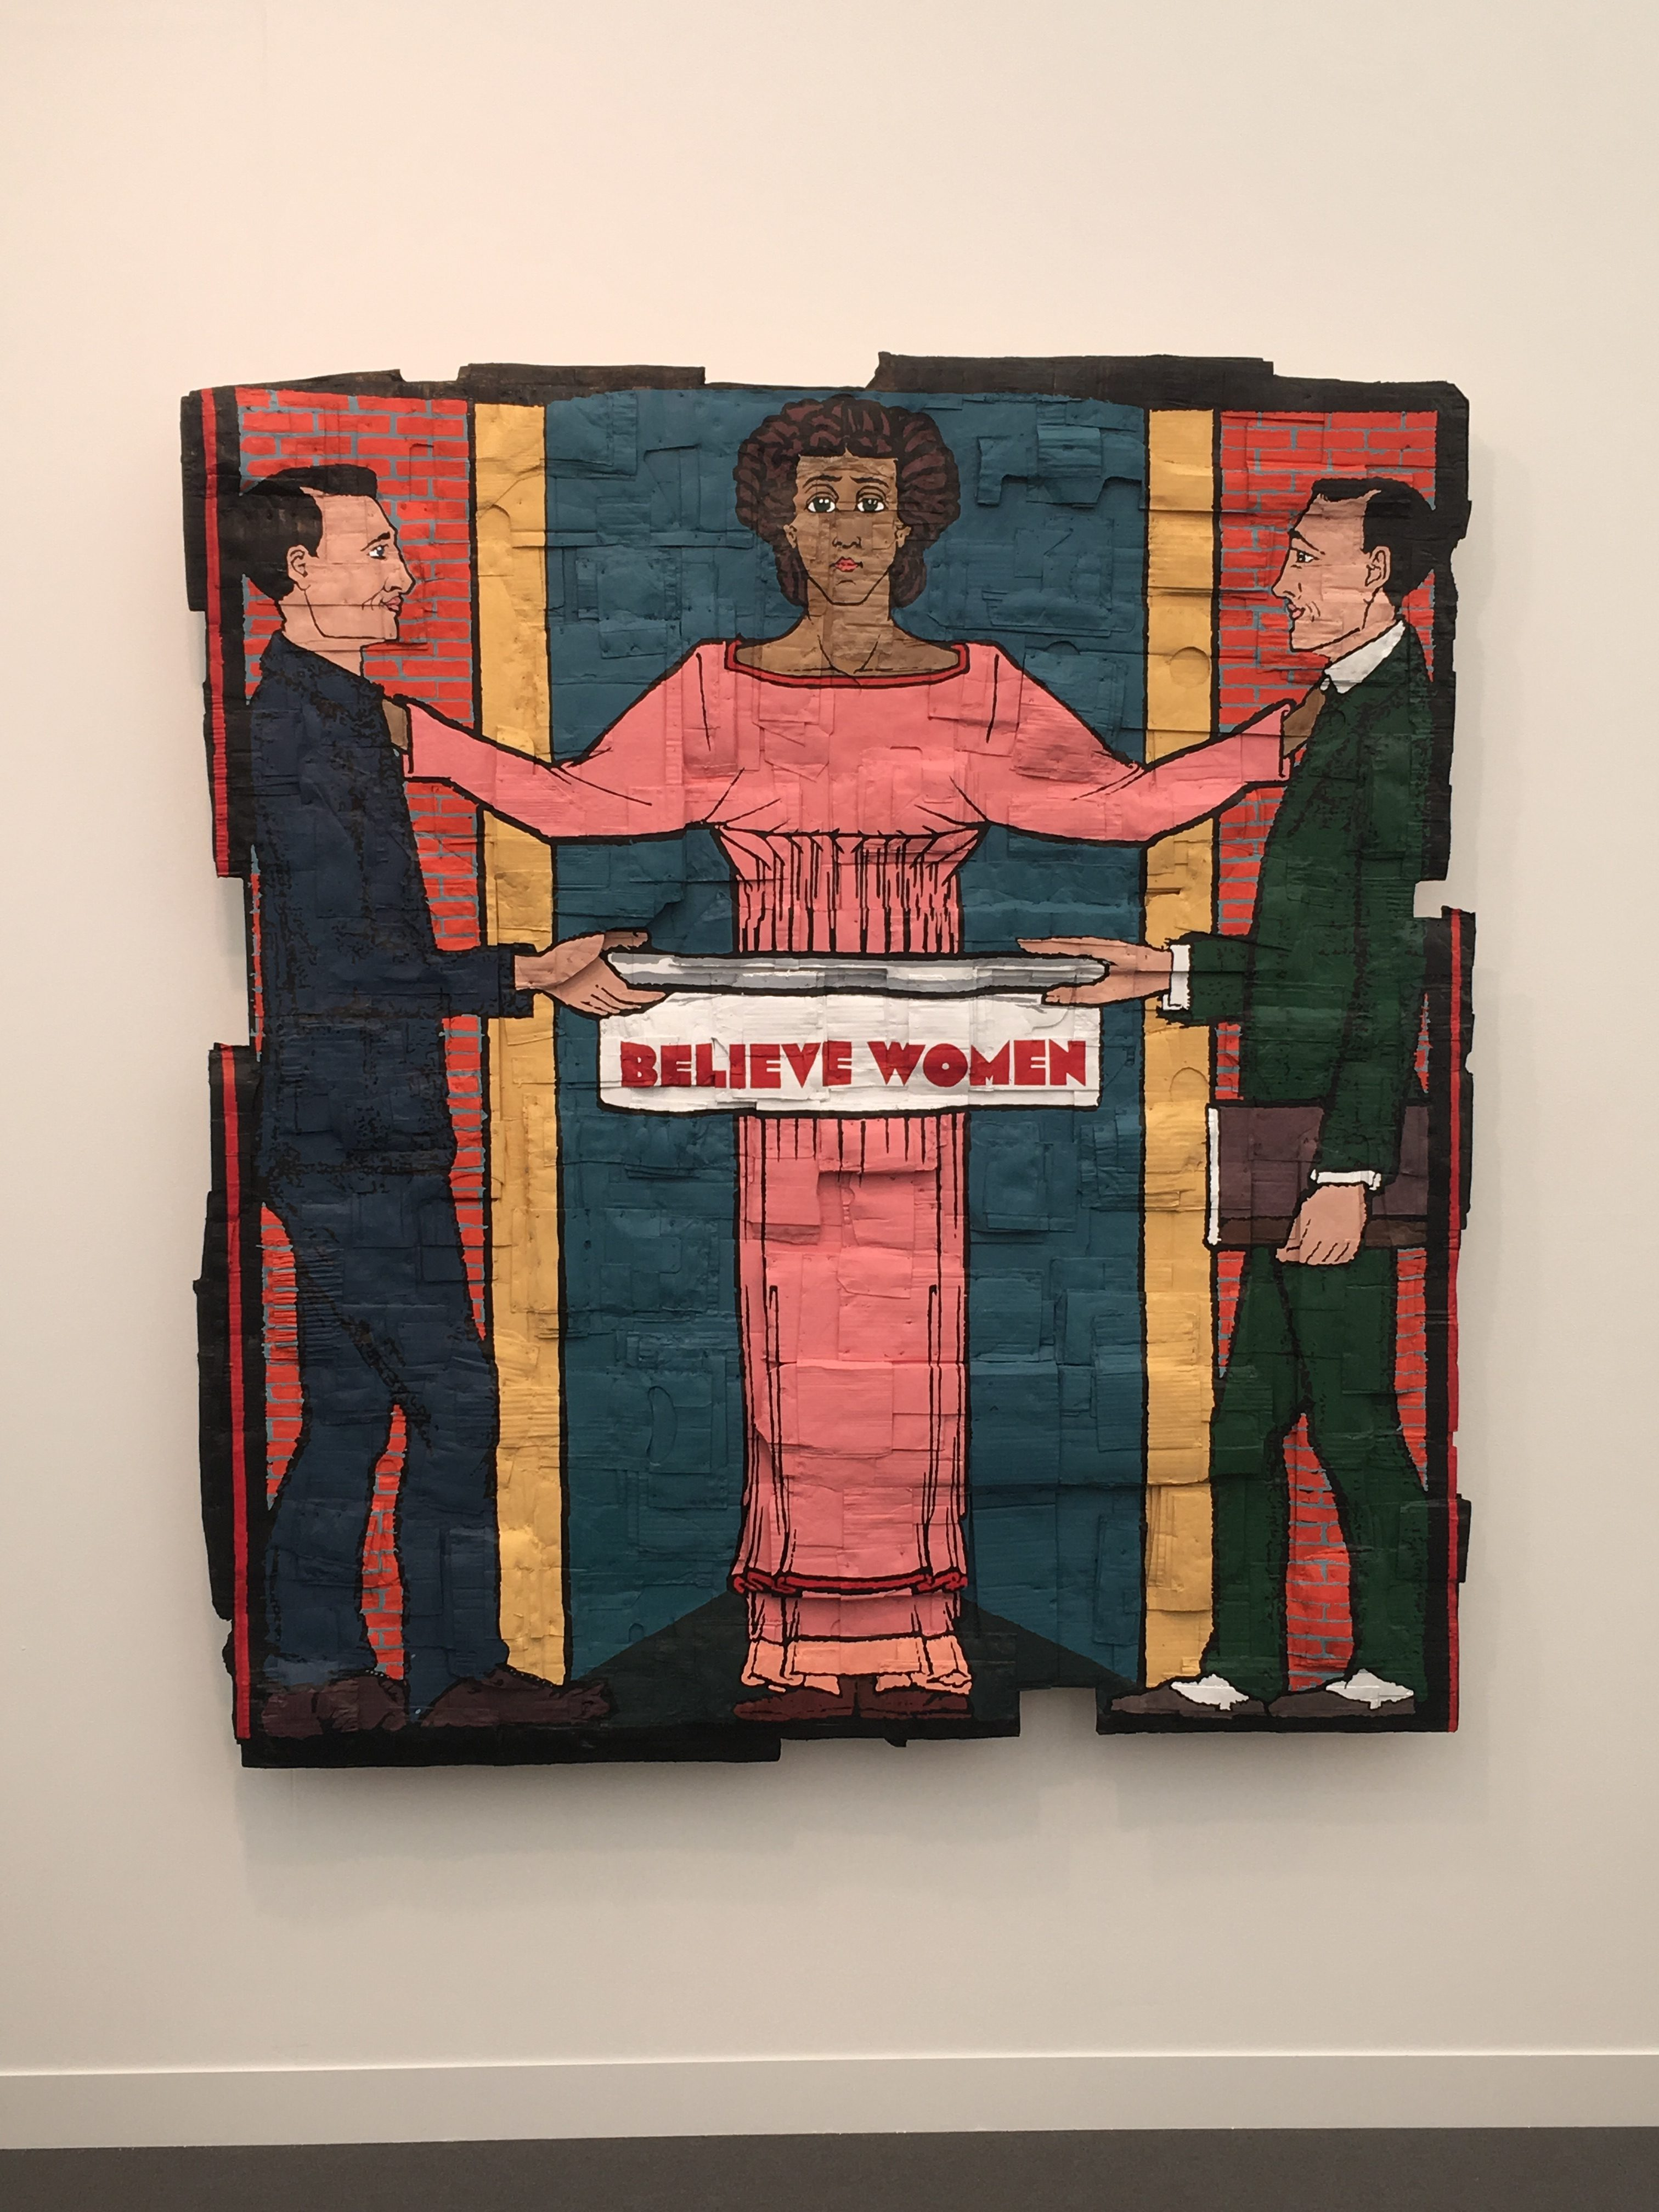 Andrea Bowers, Believe Women, 2018, acrylic marker on cardboard